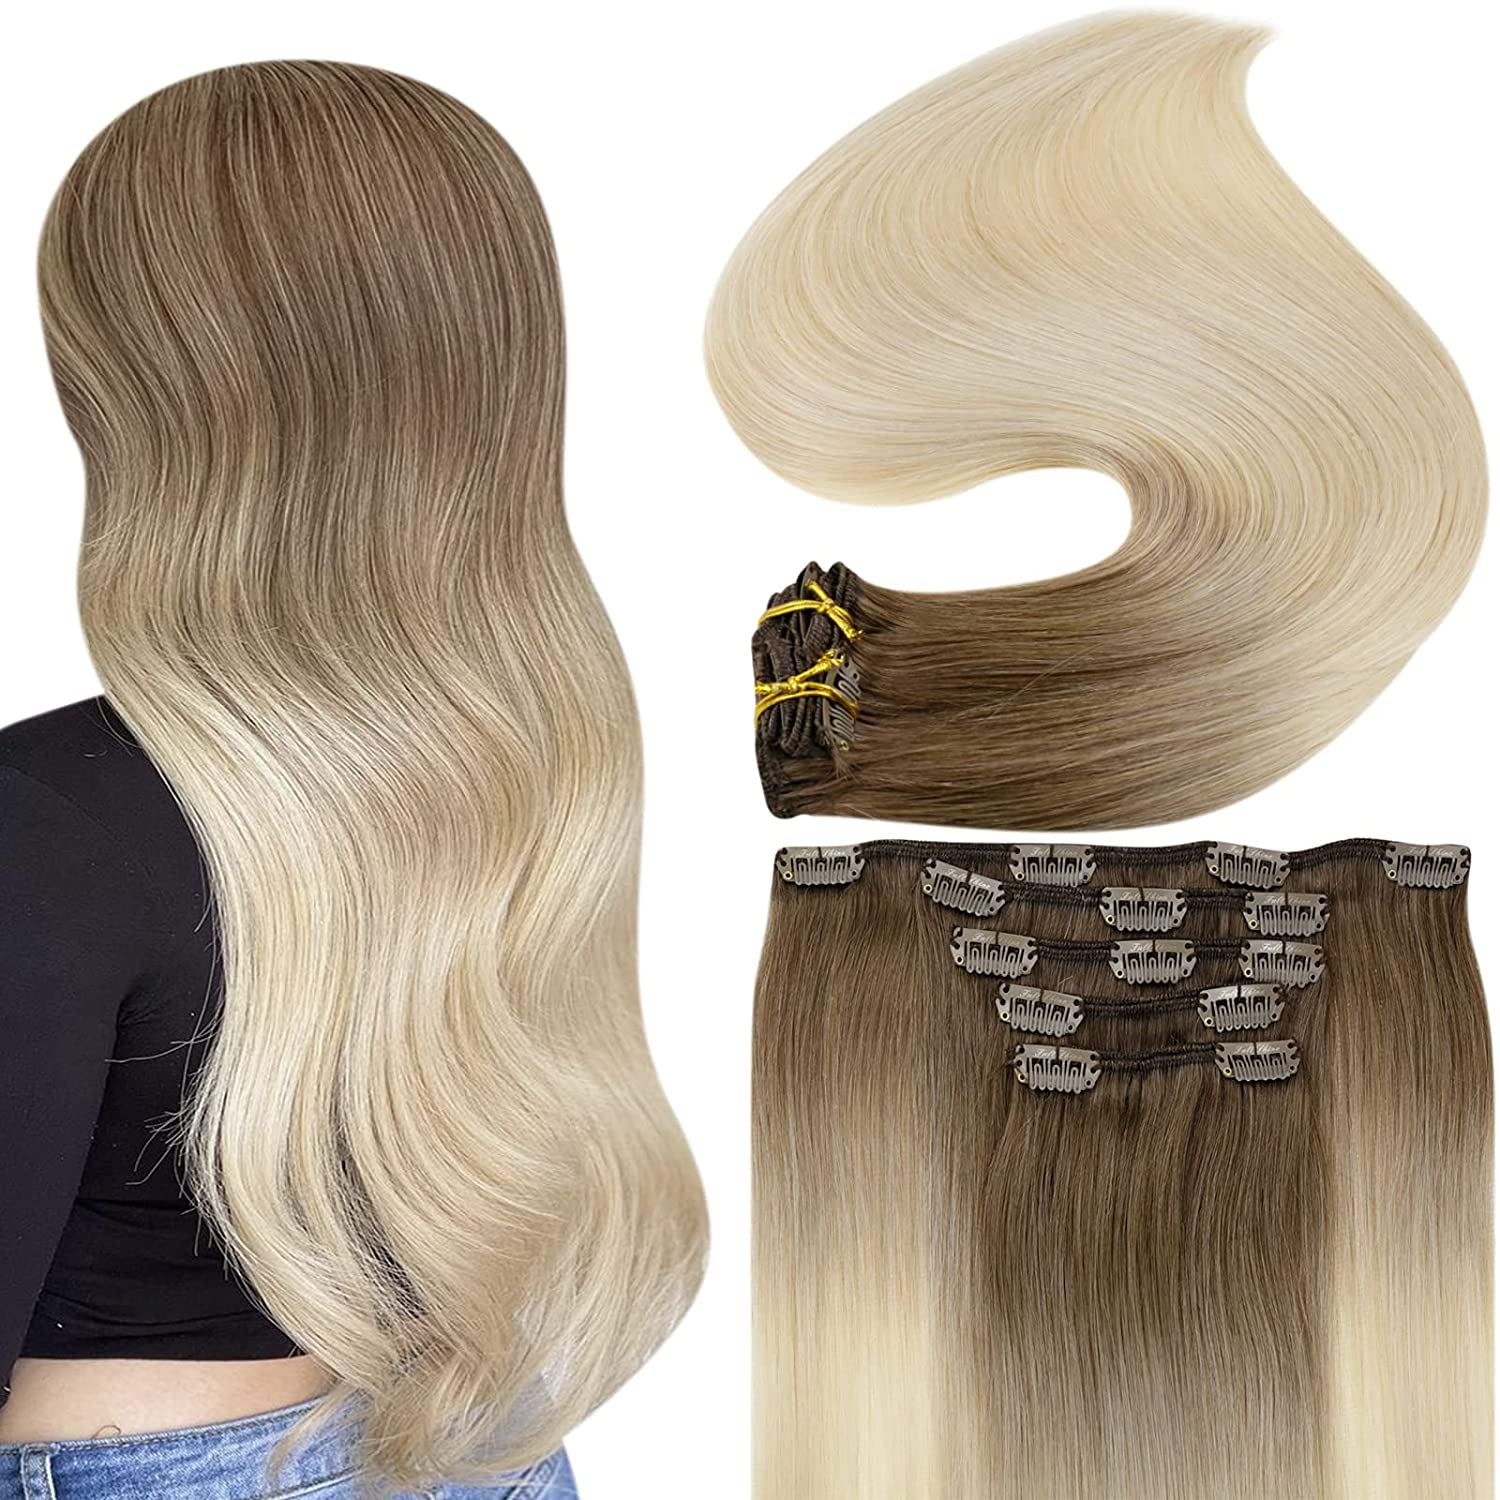 Fshine 5 Max 61% OFF ☆ very popular Clip in Hair Extensions Brown Light Human Fading to